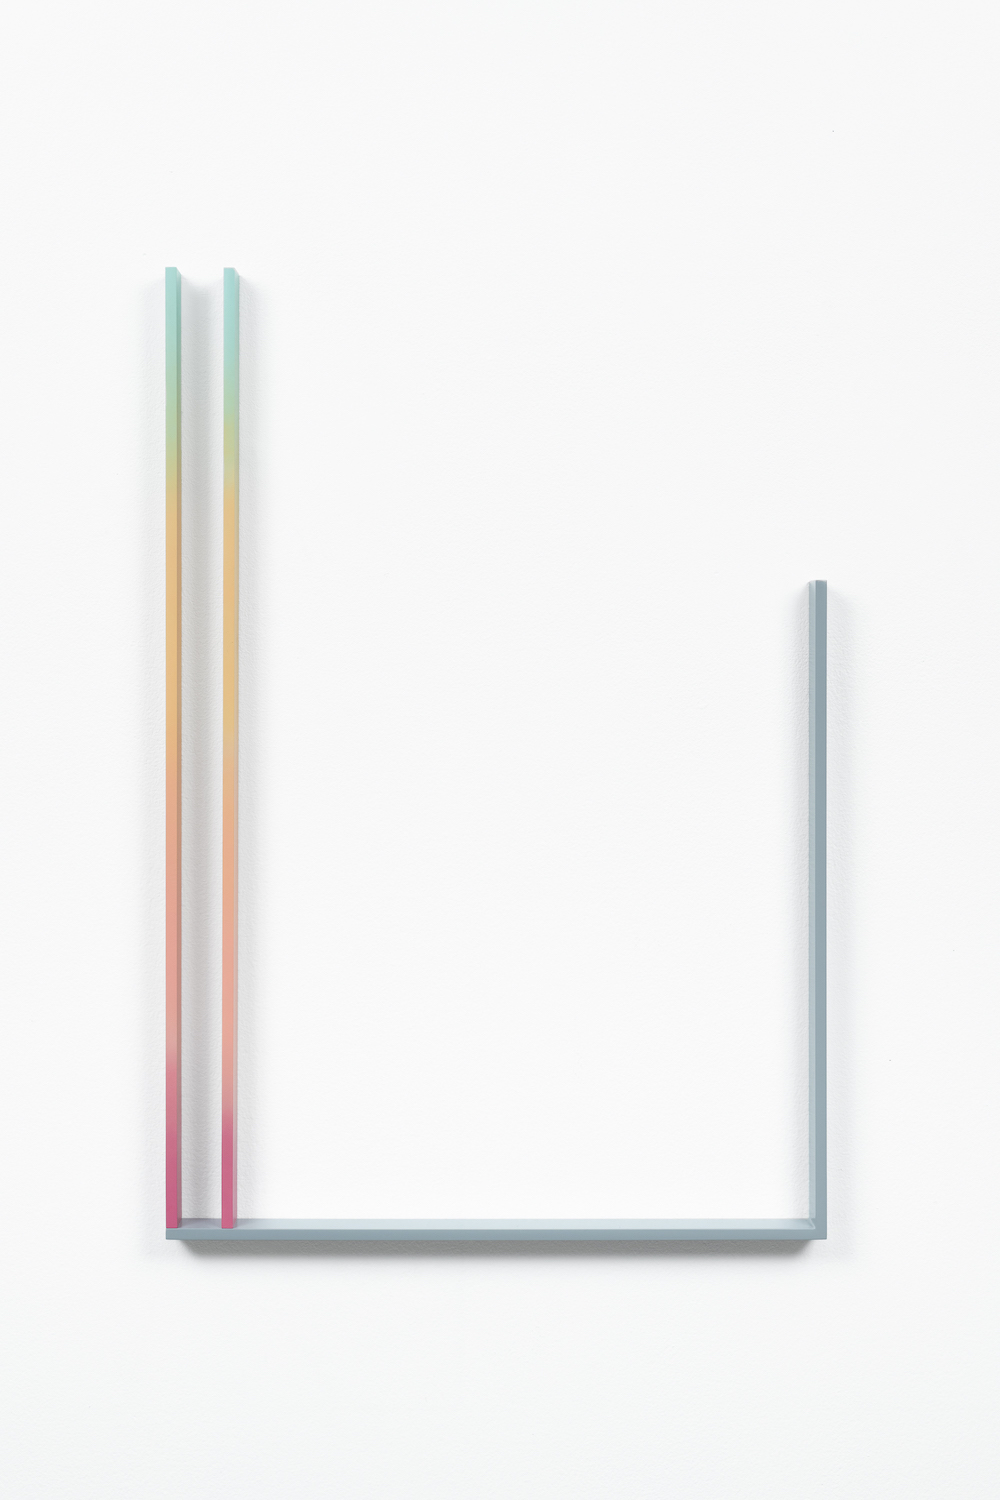 André Tehrani, Stock Gradient (MegaTron), 2019, acrylic lacquer and acrylic polyurethane paint on water cut steel, 46,8 x 68,8 cm x 3,2 cm